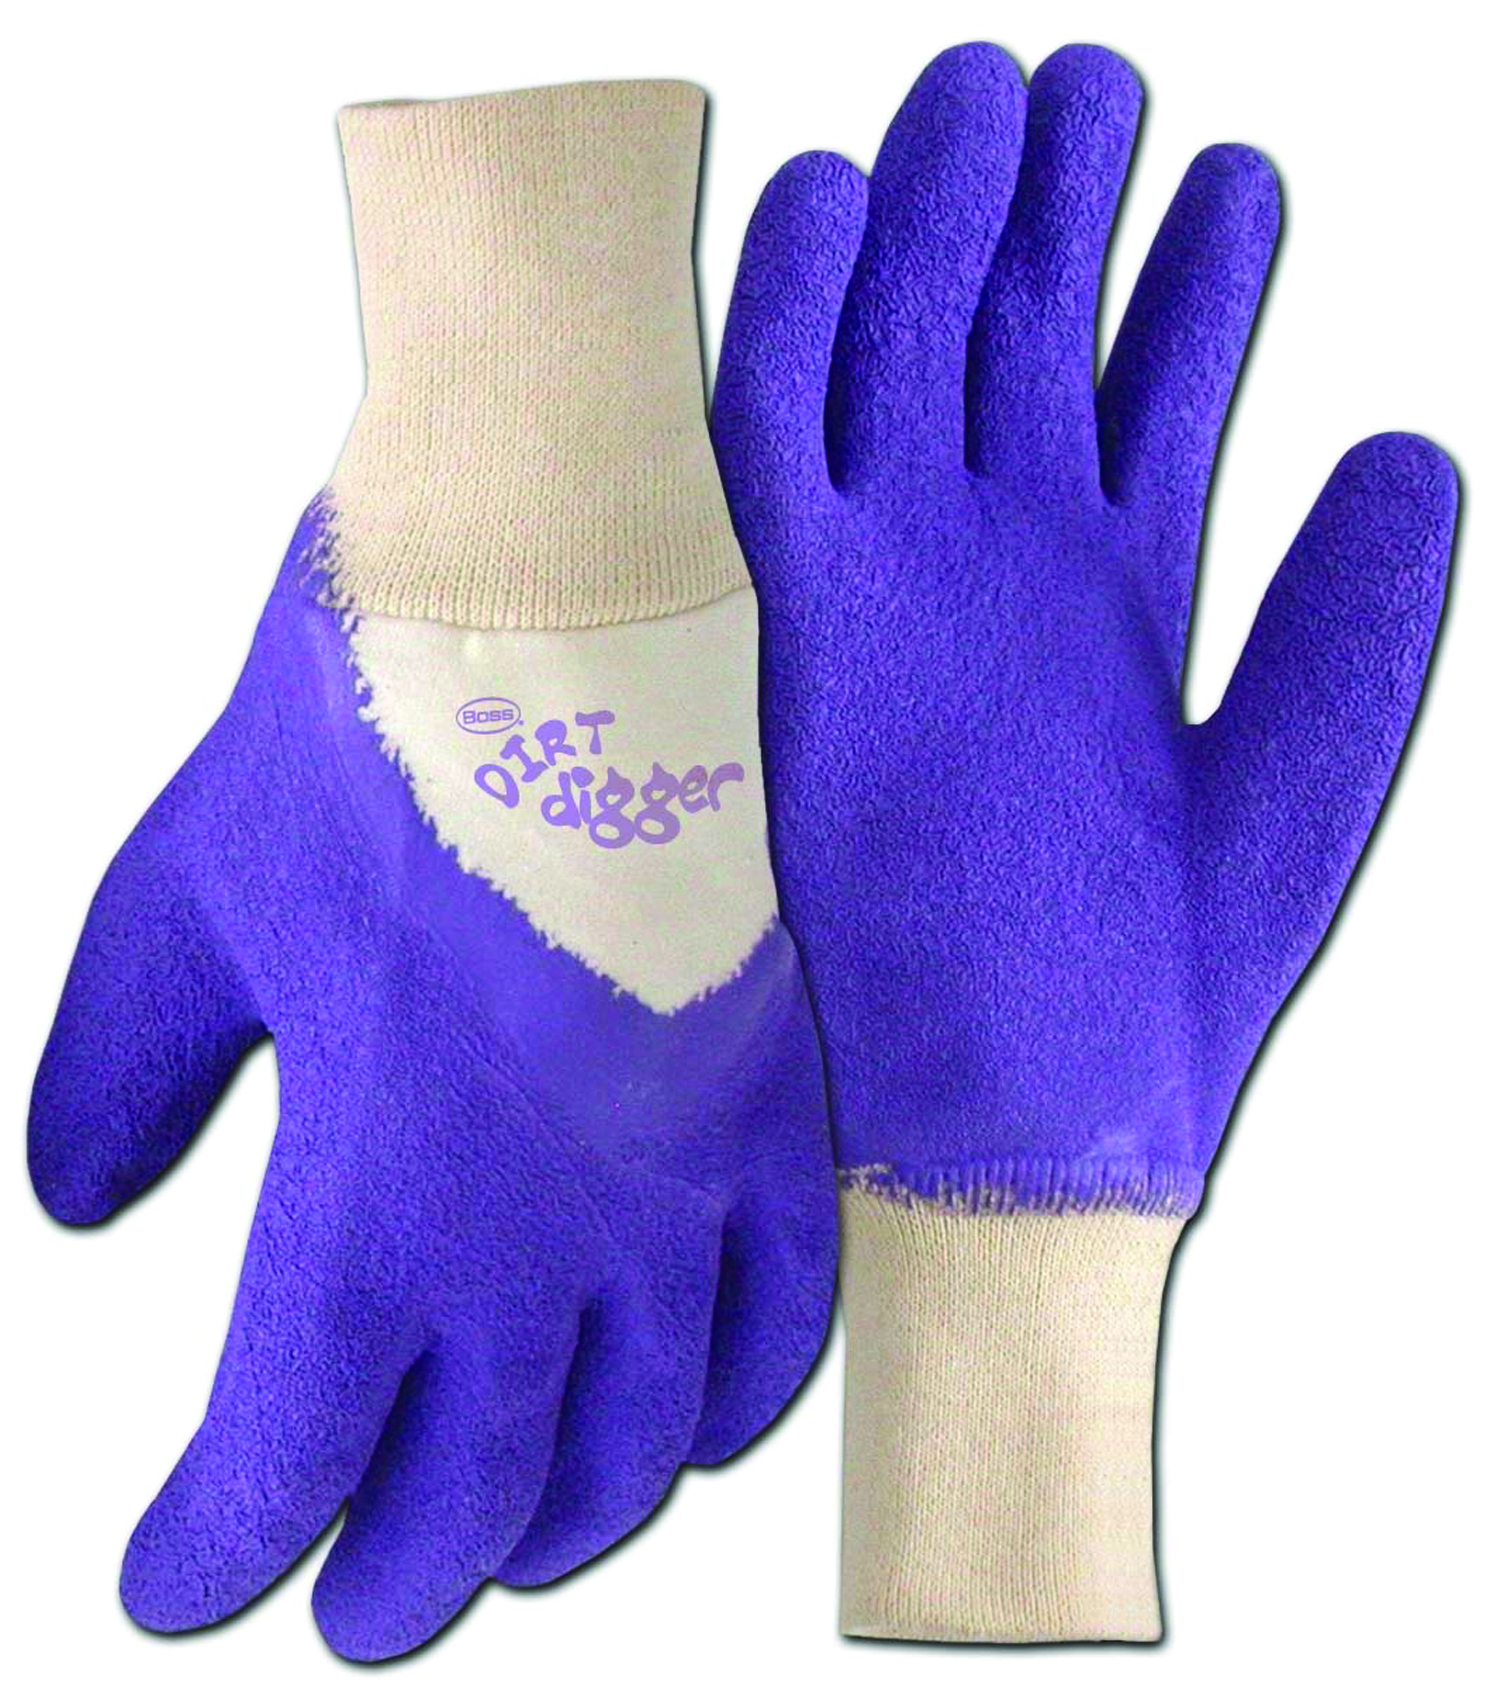 Boss Dirt Digger Glove For Yard Work/Gardening